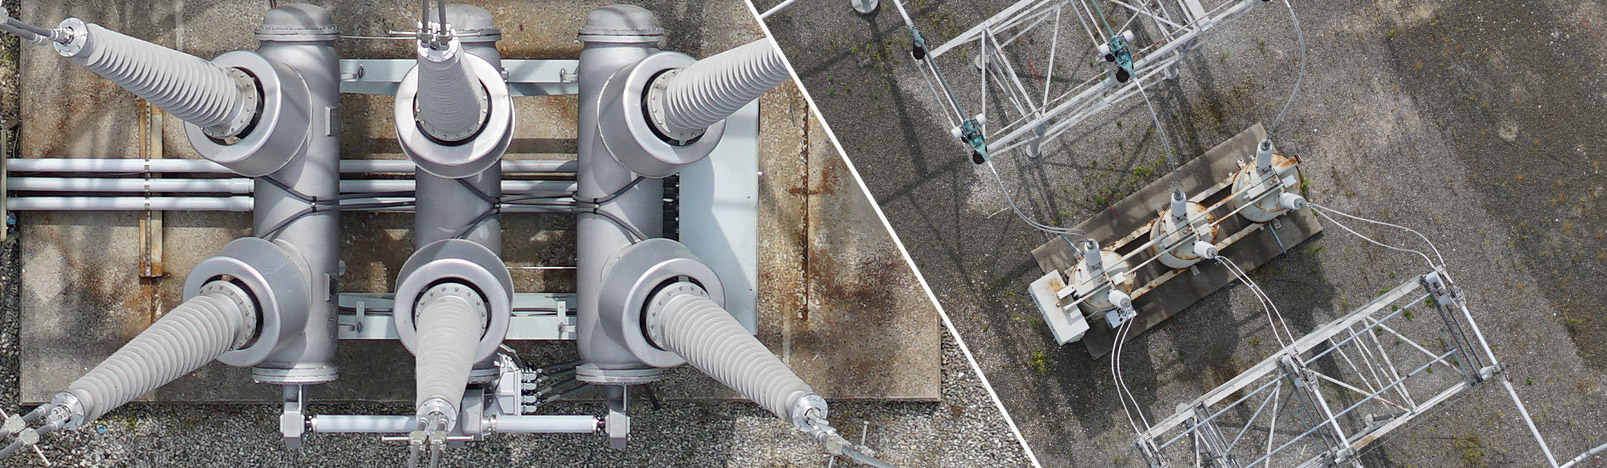 unmanned aerial substation inspection drone